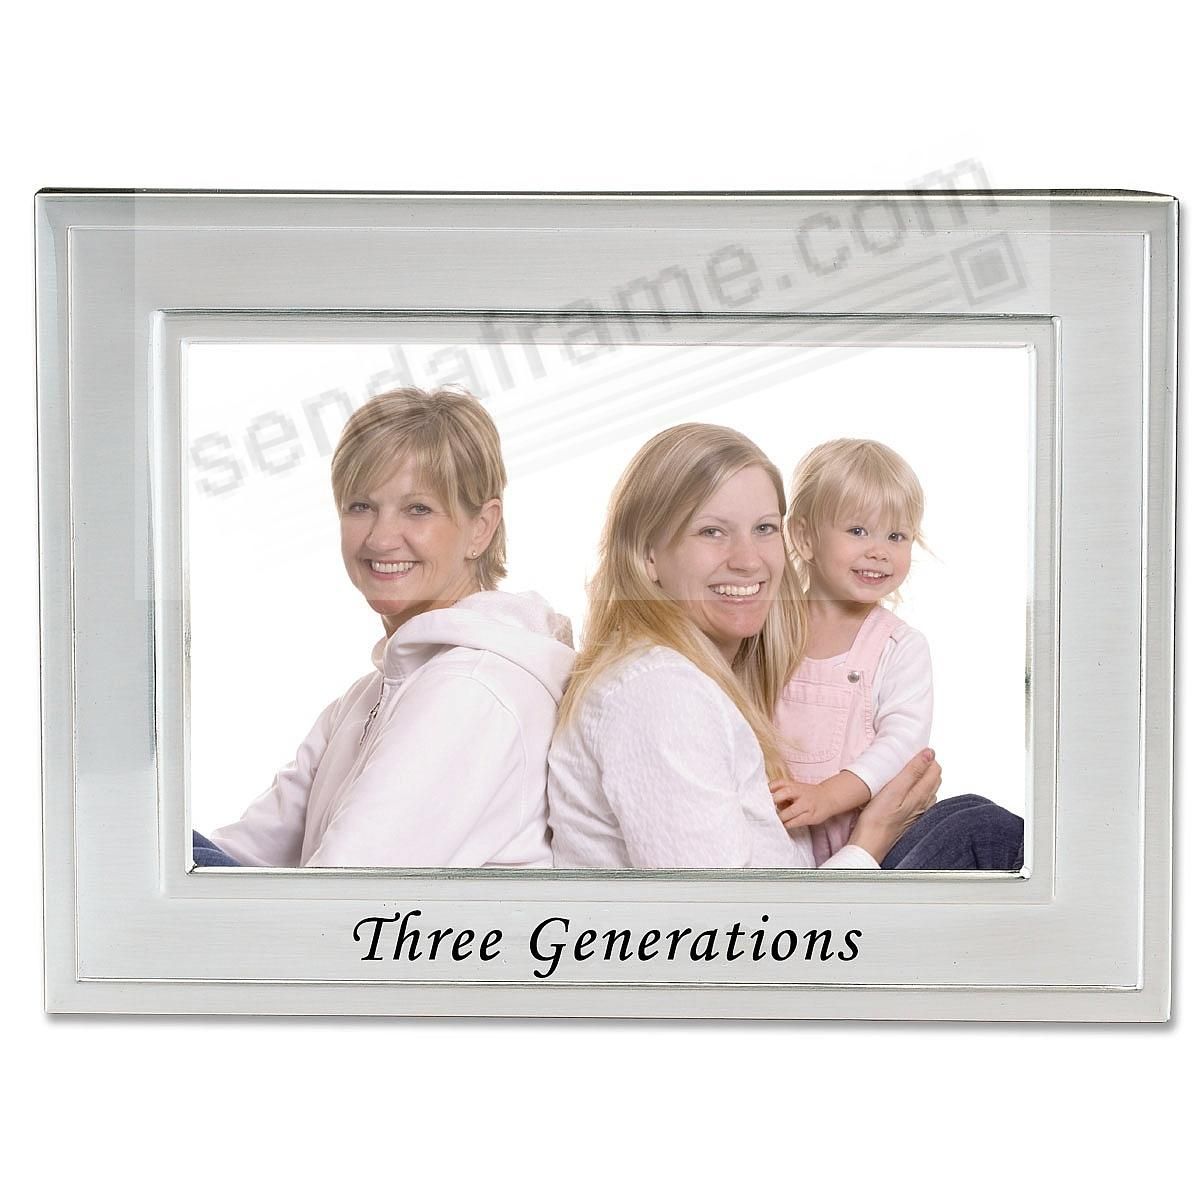 THREE GENERATIONS - Picture Frames, Photo Albums, Personalized and ...